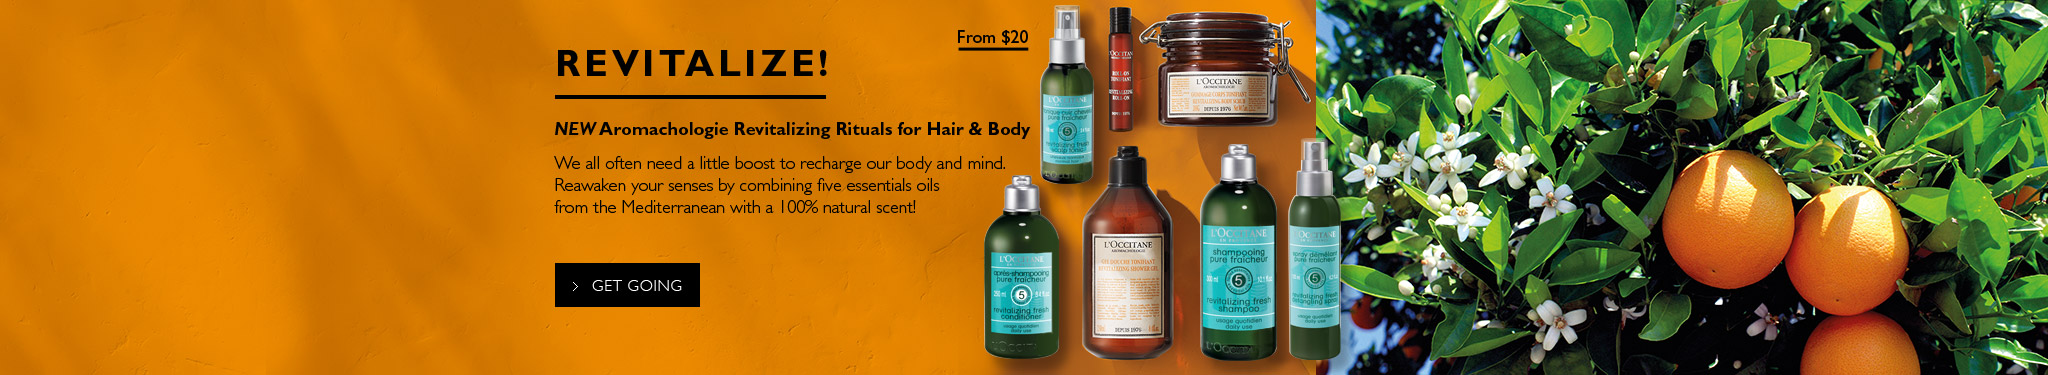 Revitalize! From $20.NEW Aromachologie Revitalizing Rituals for Hair & Body. We all often need a little boost to recharge our body and mind.Reawaken your senses by combining five essentials oils from the Mediterranean with a 100% natural scent !